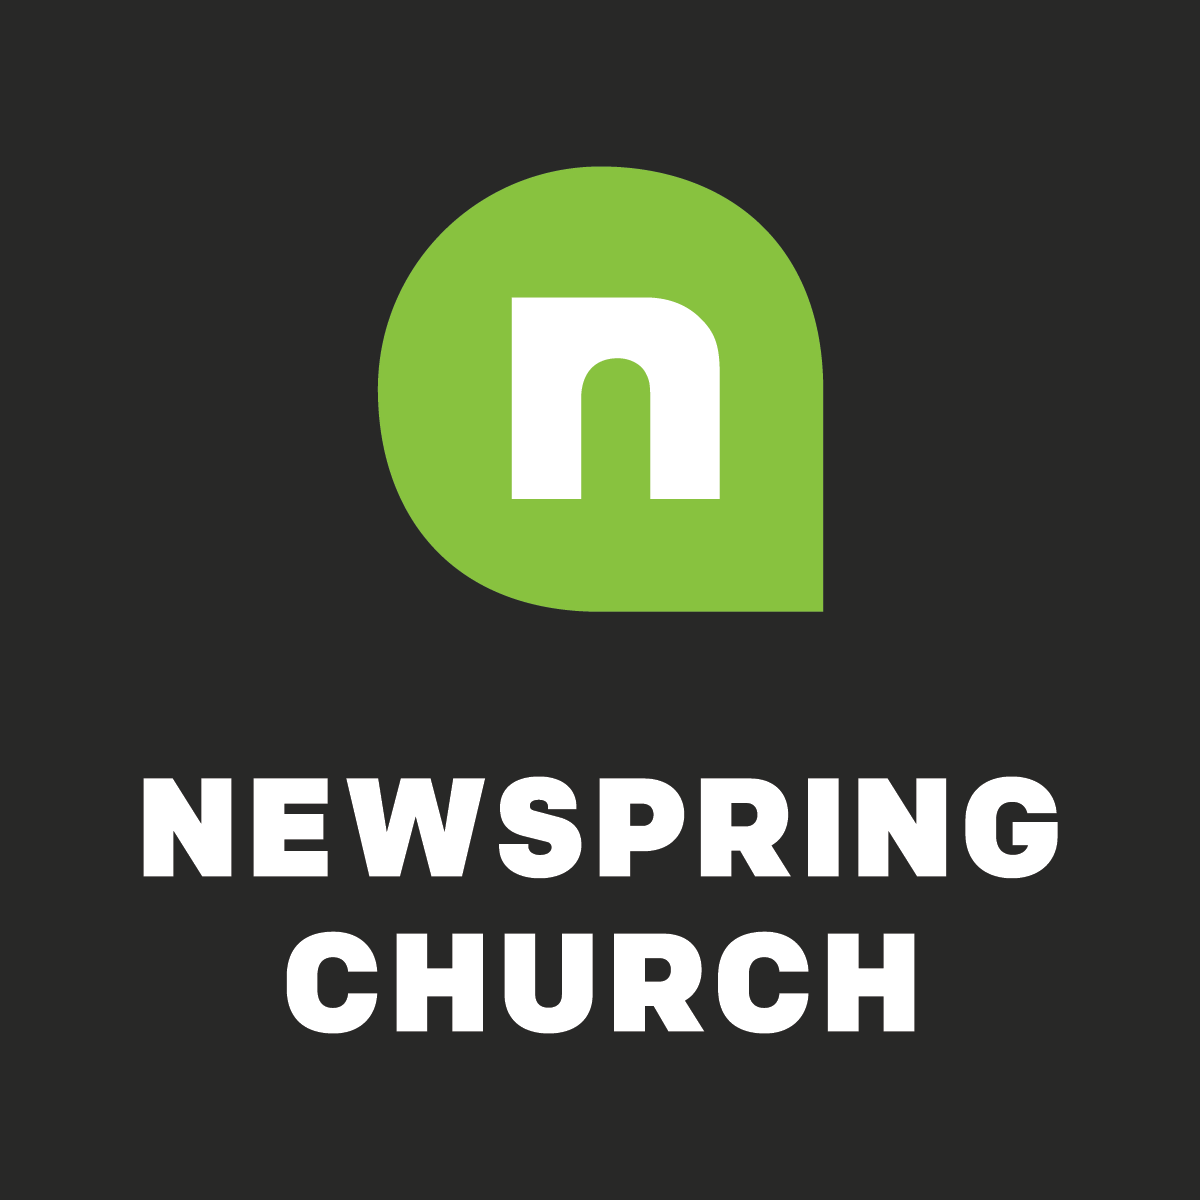 newspring_church_logo_detail